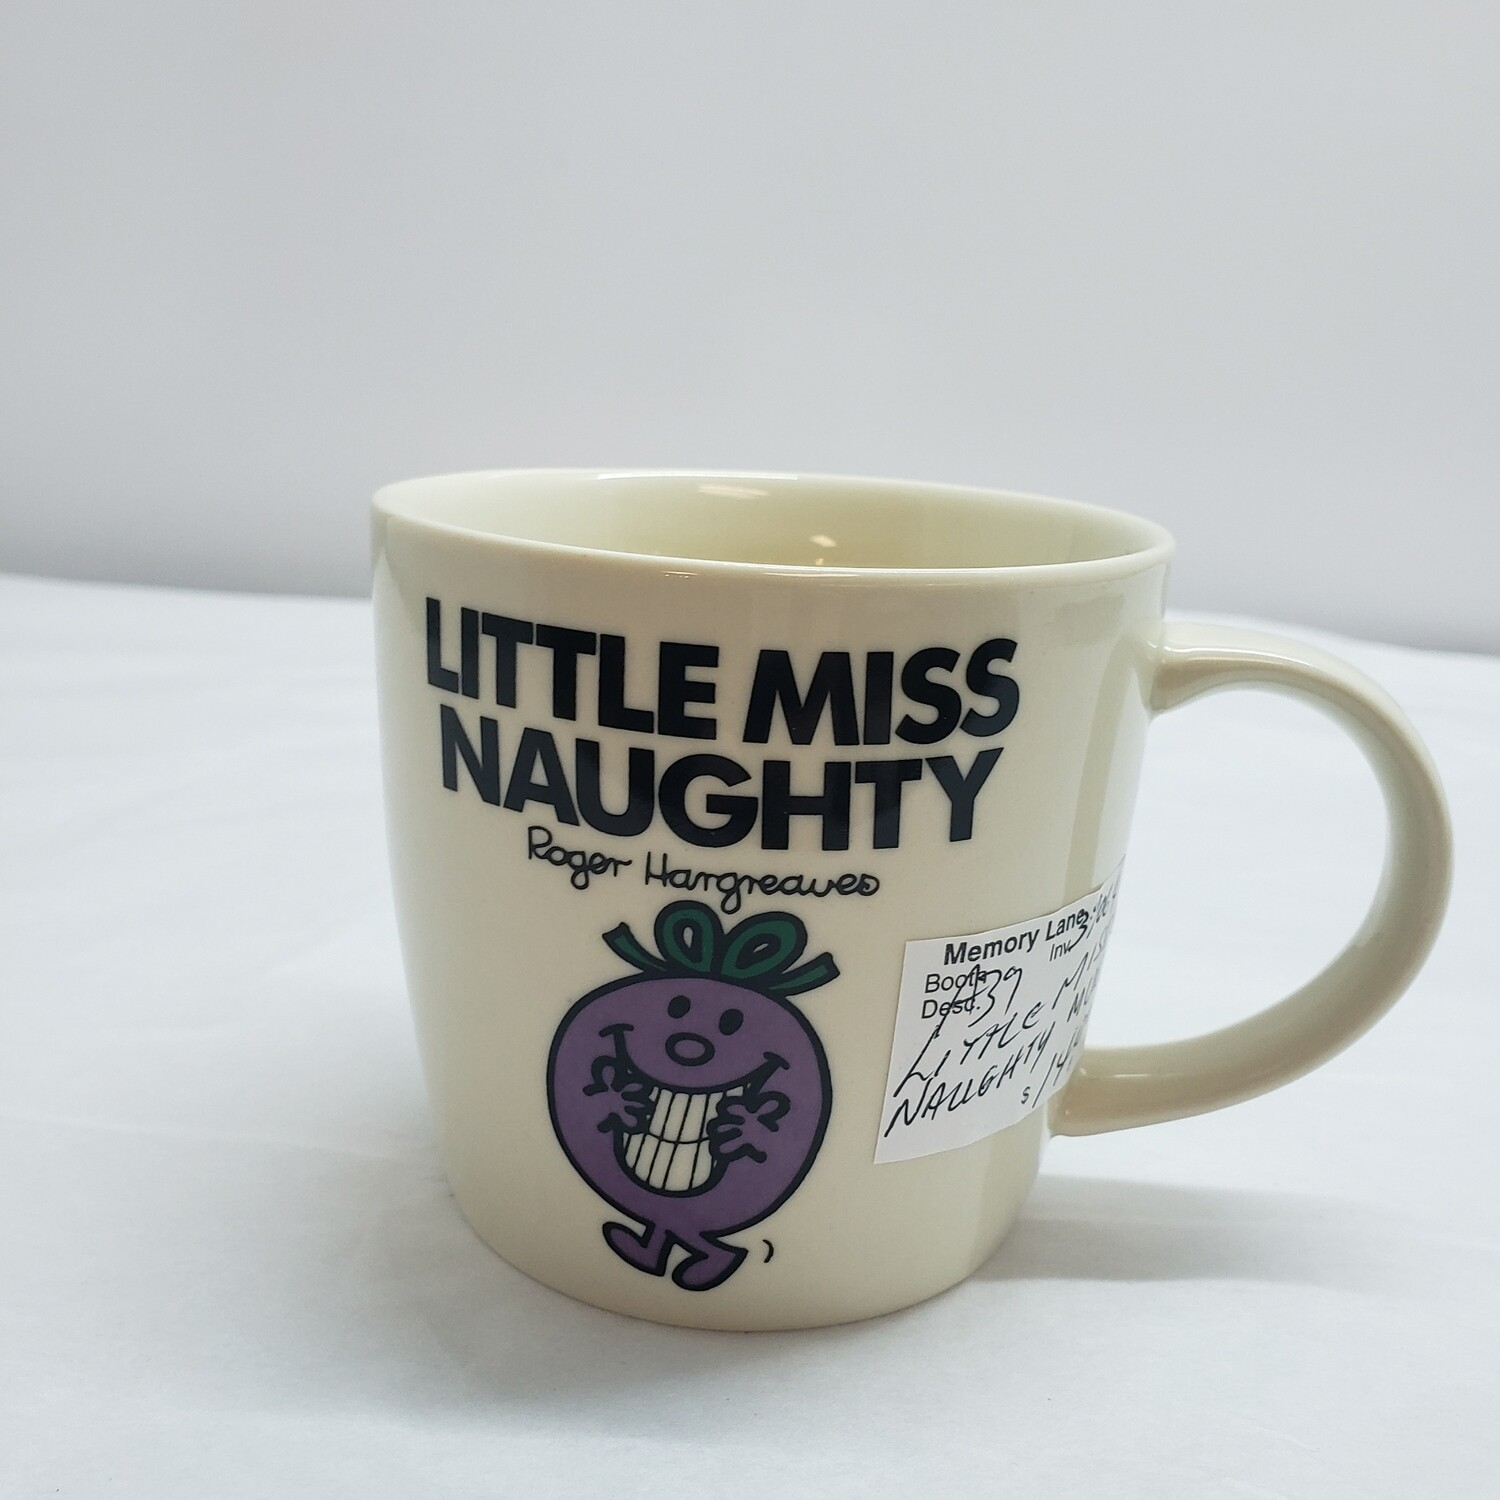 Little Miss Naughty - A39